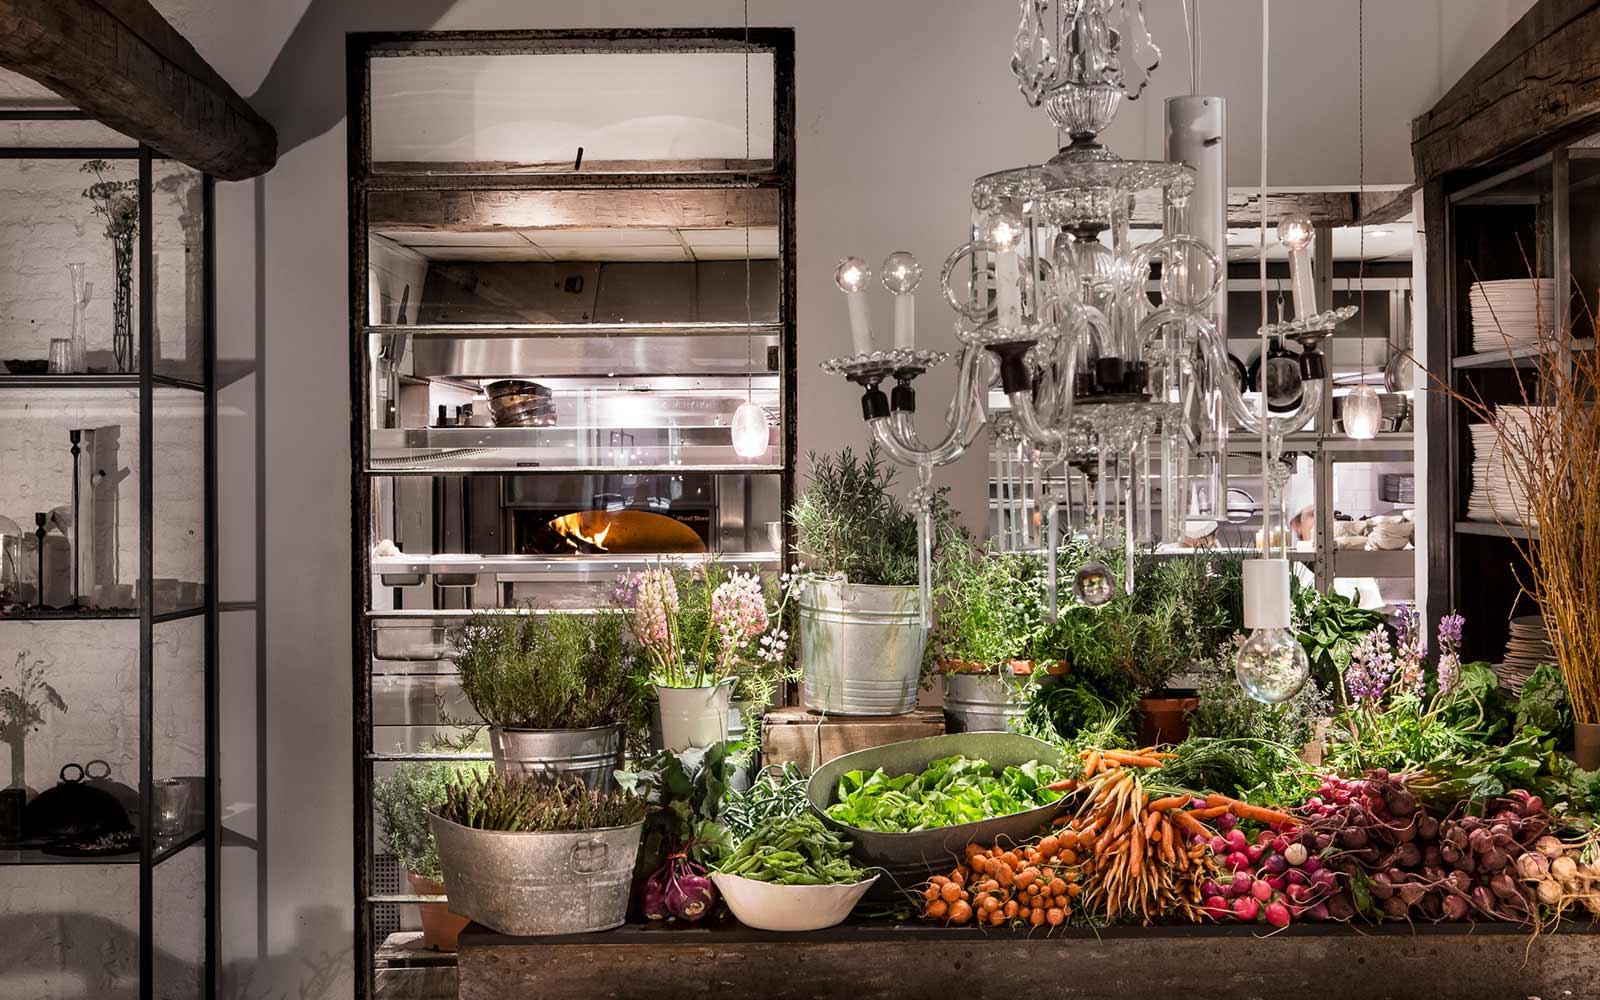 A Twinkling Baby Shower at ABC Kitchen | NYC Lifestyle ...  |Abc Kitchen